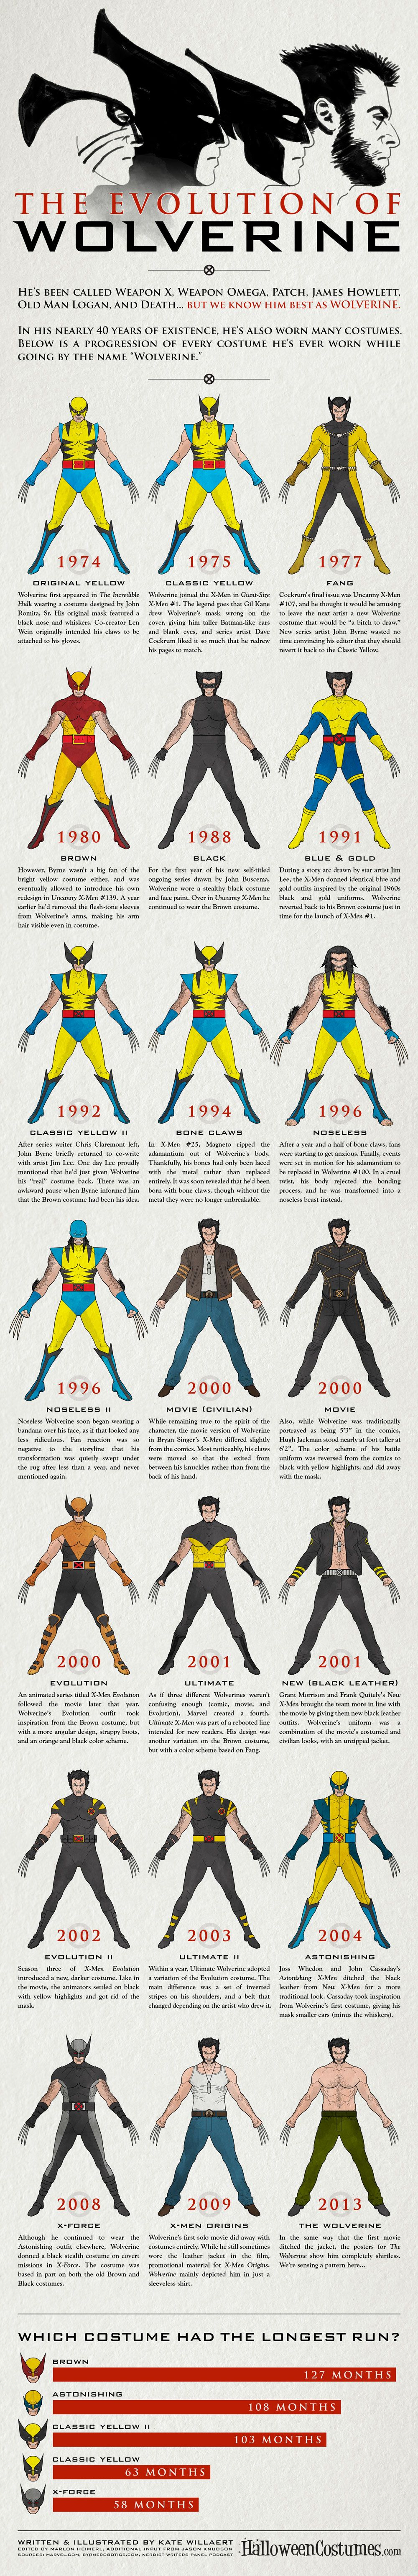 Surprising facts about Wolverine's costume